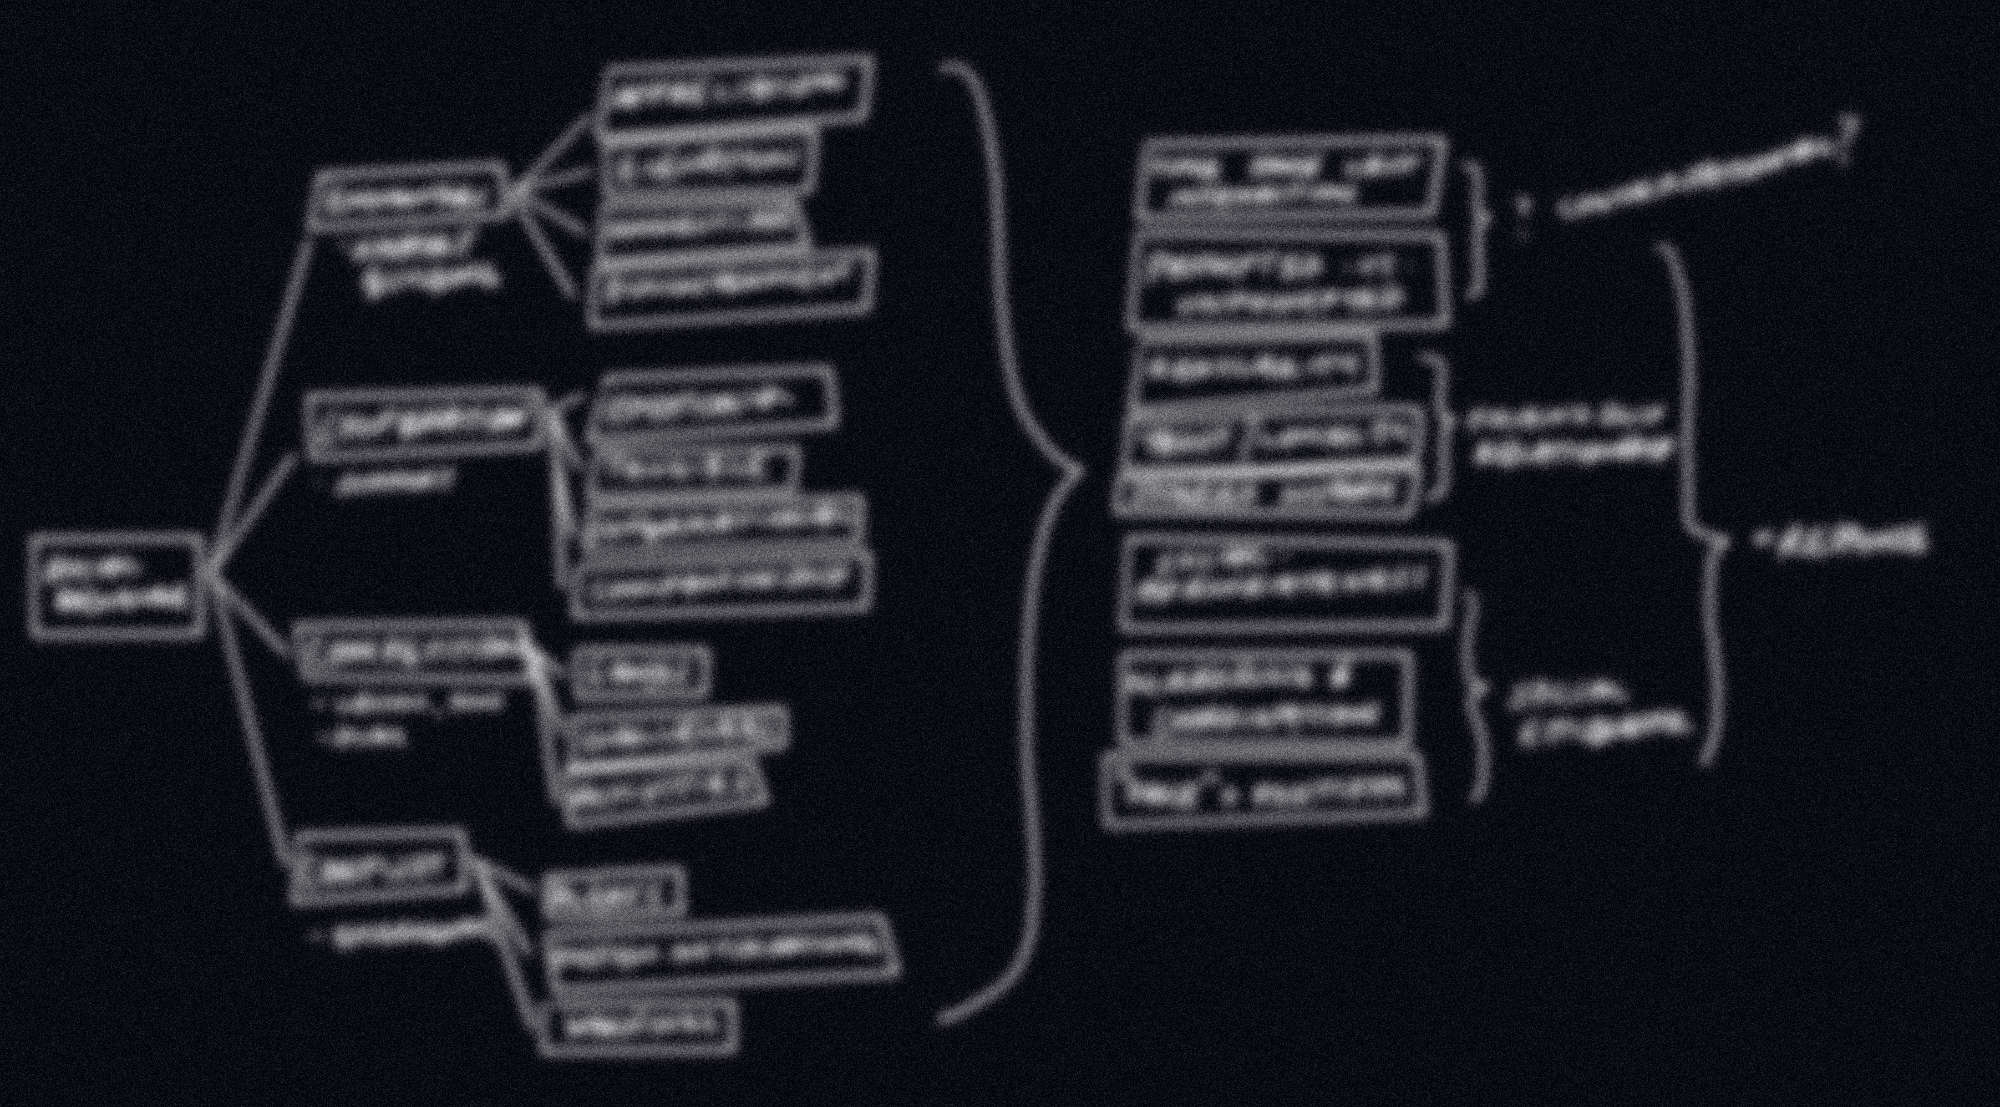 A redacted sketch of a flow chart